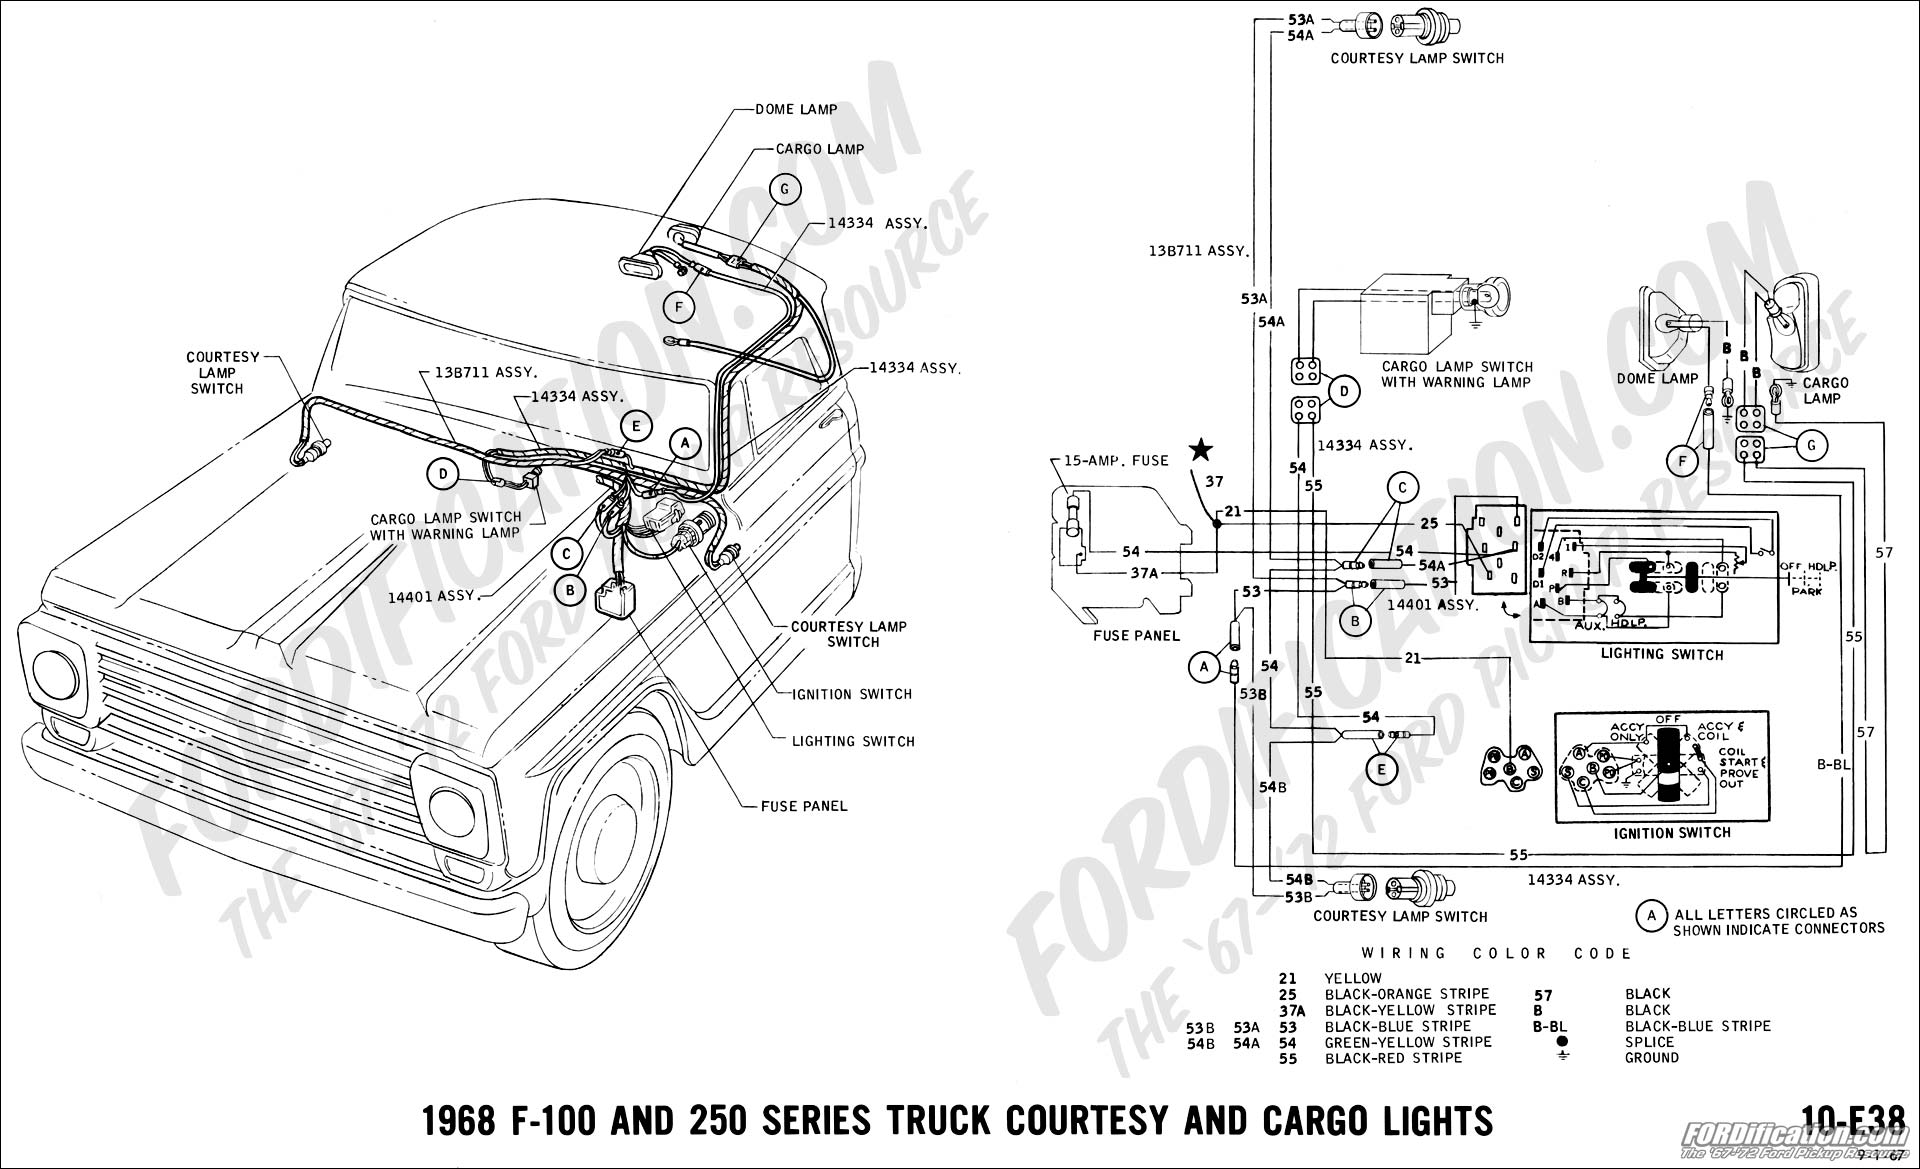 68 40 ford truck technical drawings and schematics section h wiring 1970 Ford F-250 Wiring Diagram at soozxer.org